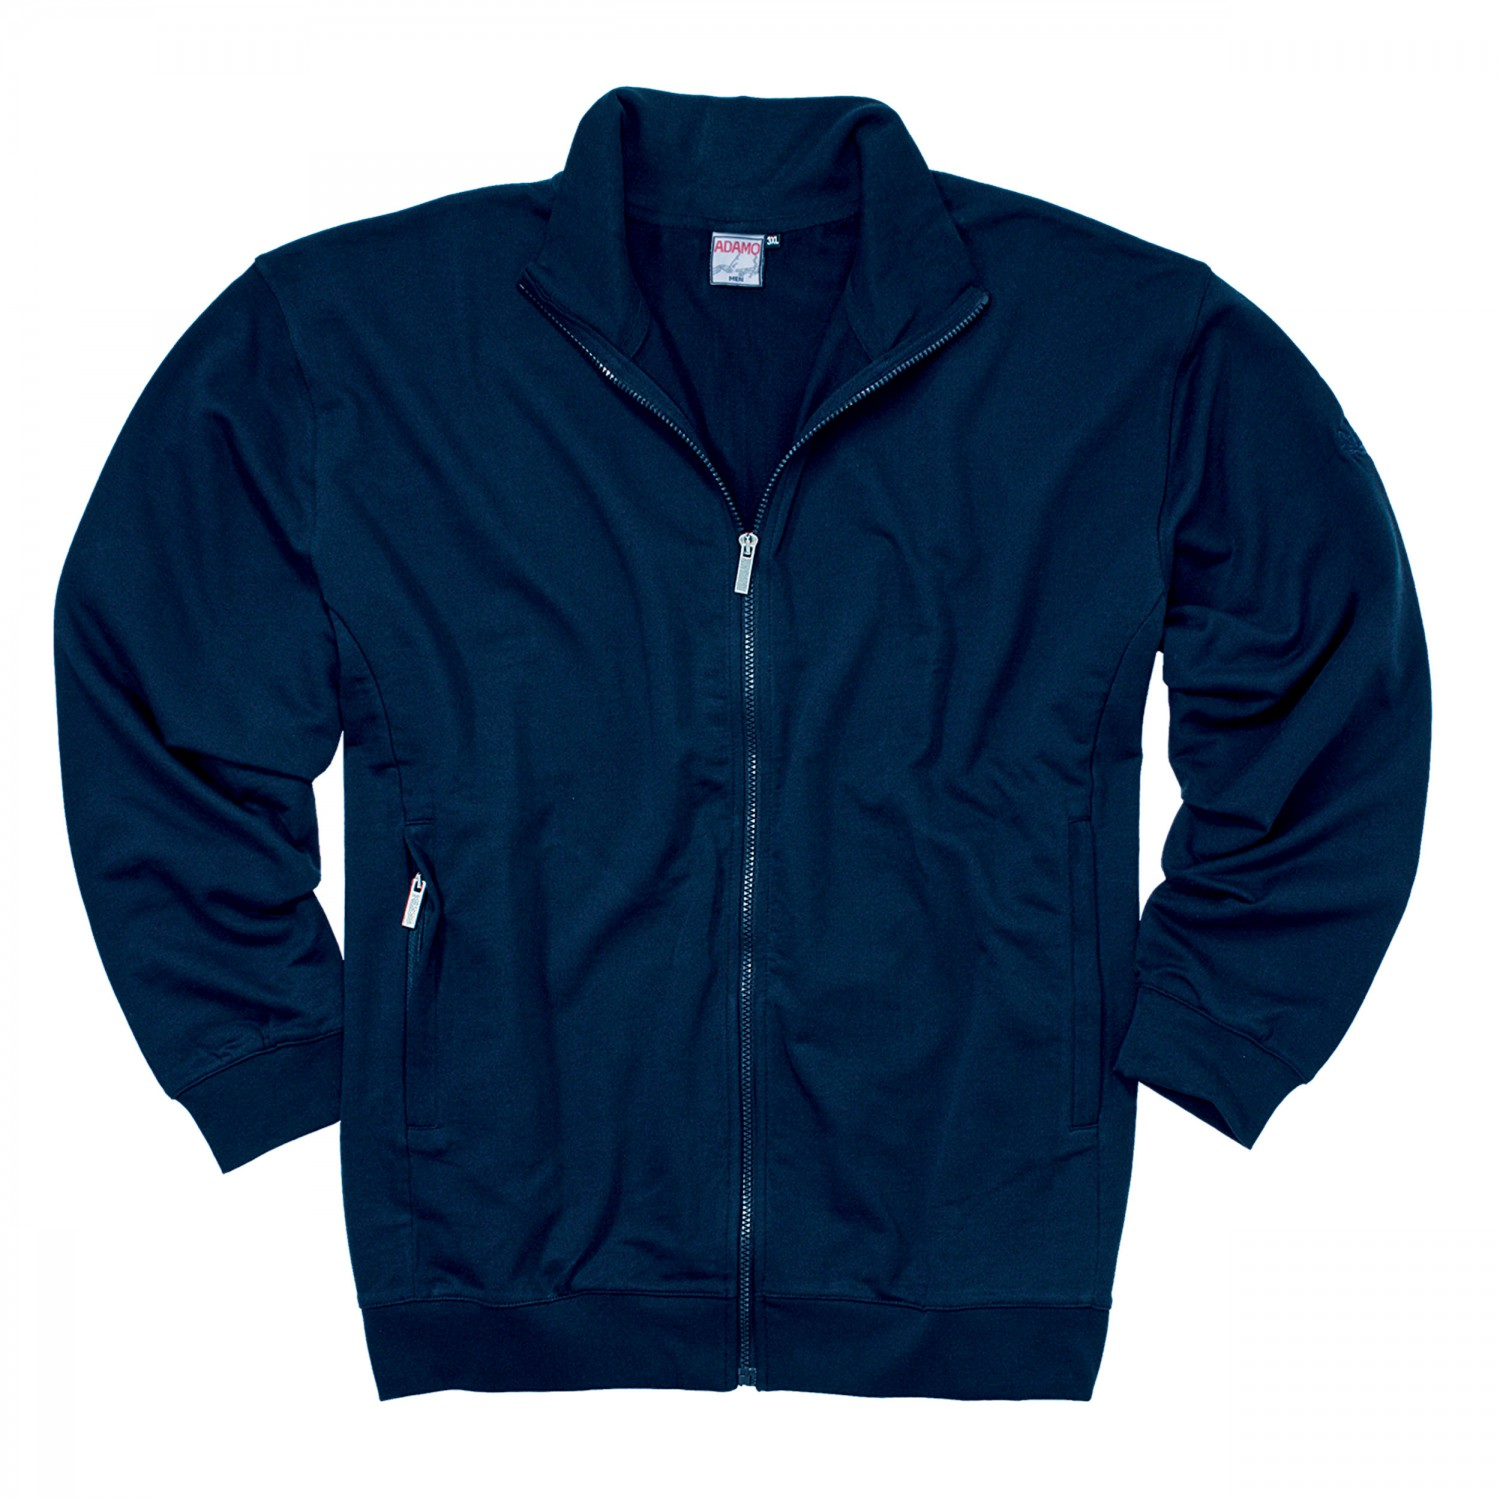 Detail Image to Sweatjacket ATHEN from Adamoin oversizes up to 14XL